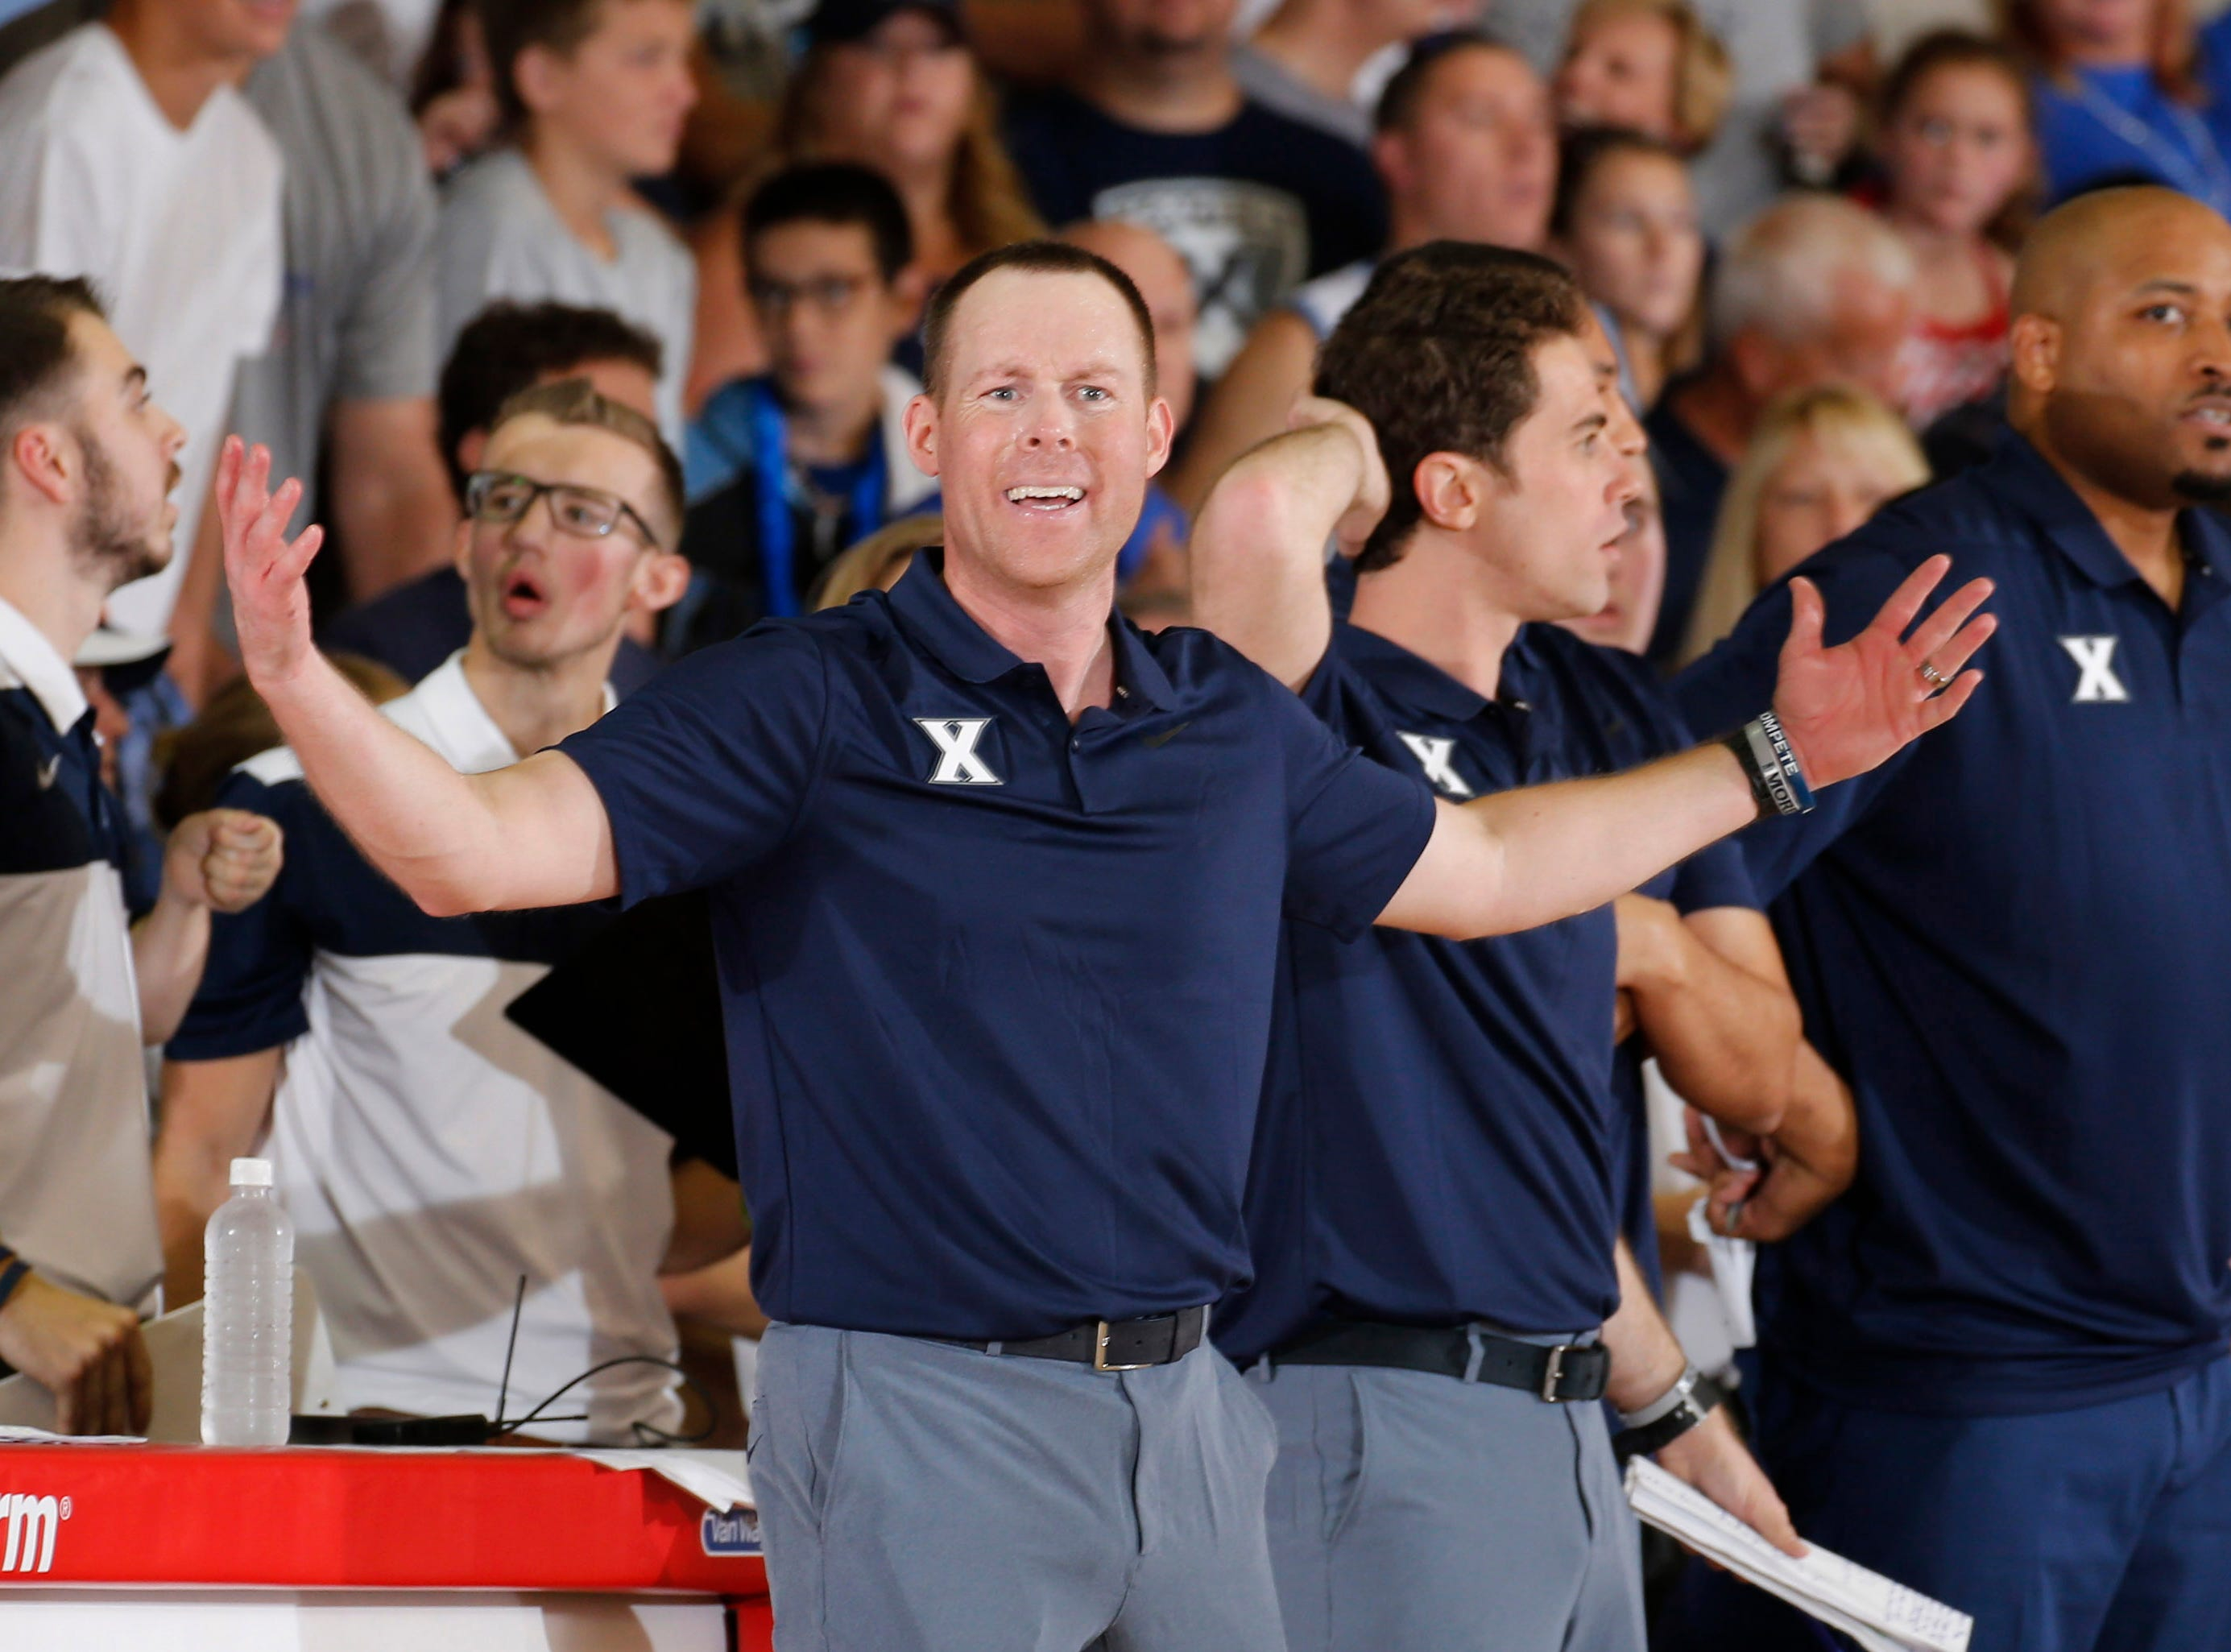 Nov 19, 2018; Lahaina, HI, USA; Xavier Musketeers coach Travis Steele coaching on the sidelines against the Auburn Tigers in the second half during the first round games of the Maui Jim Maui Invitational at Lahaina Civic Center. Mandatory Credit: Brian Spurlock-USA TODAY Sports